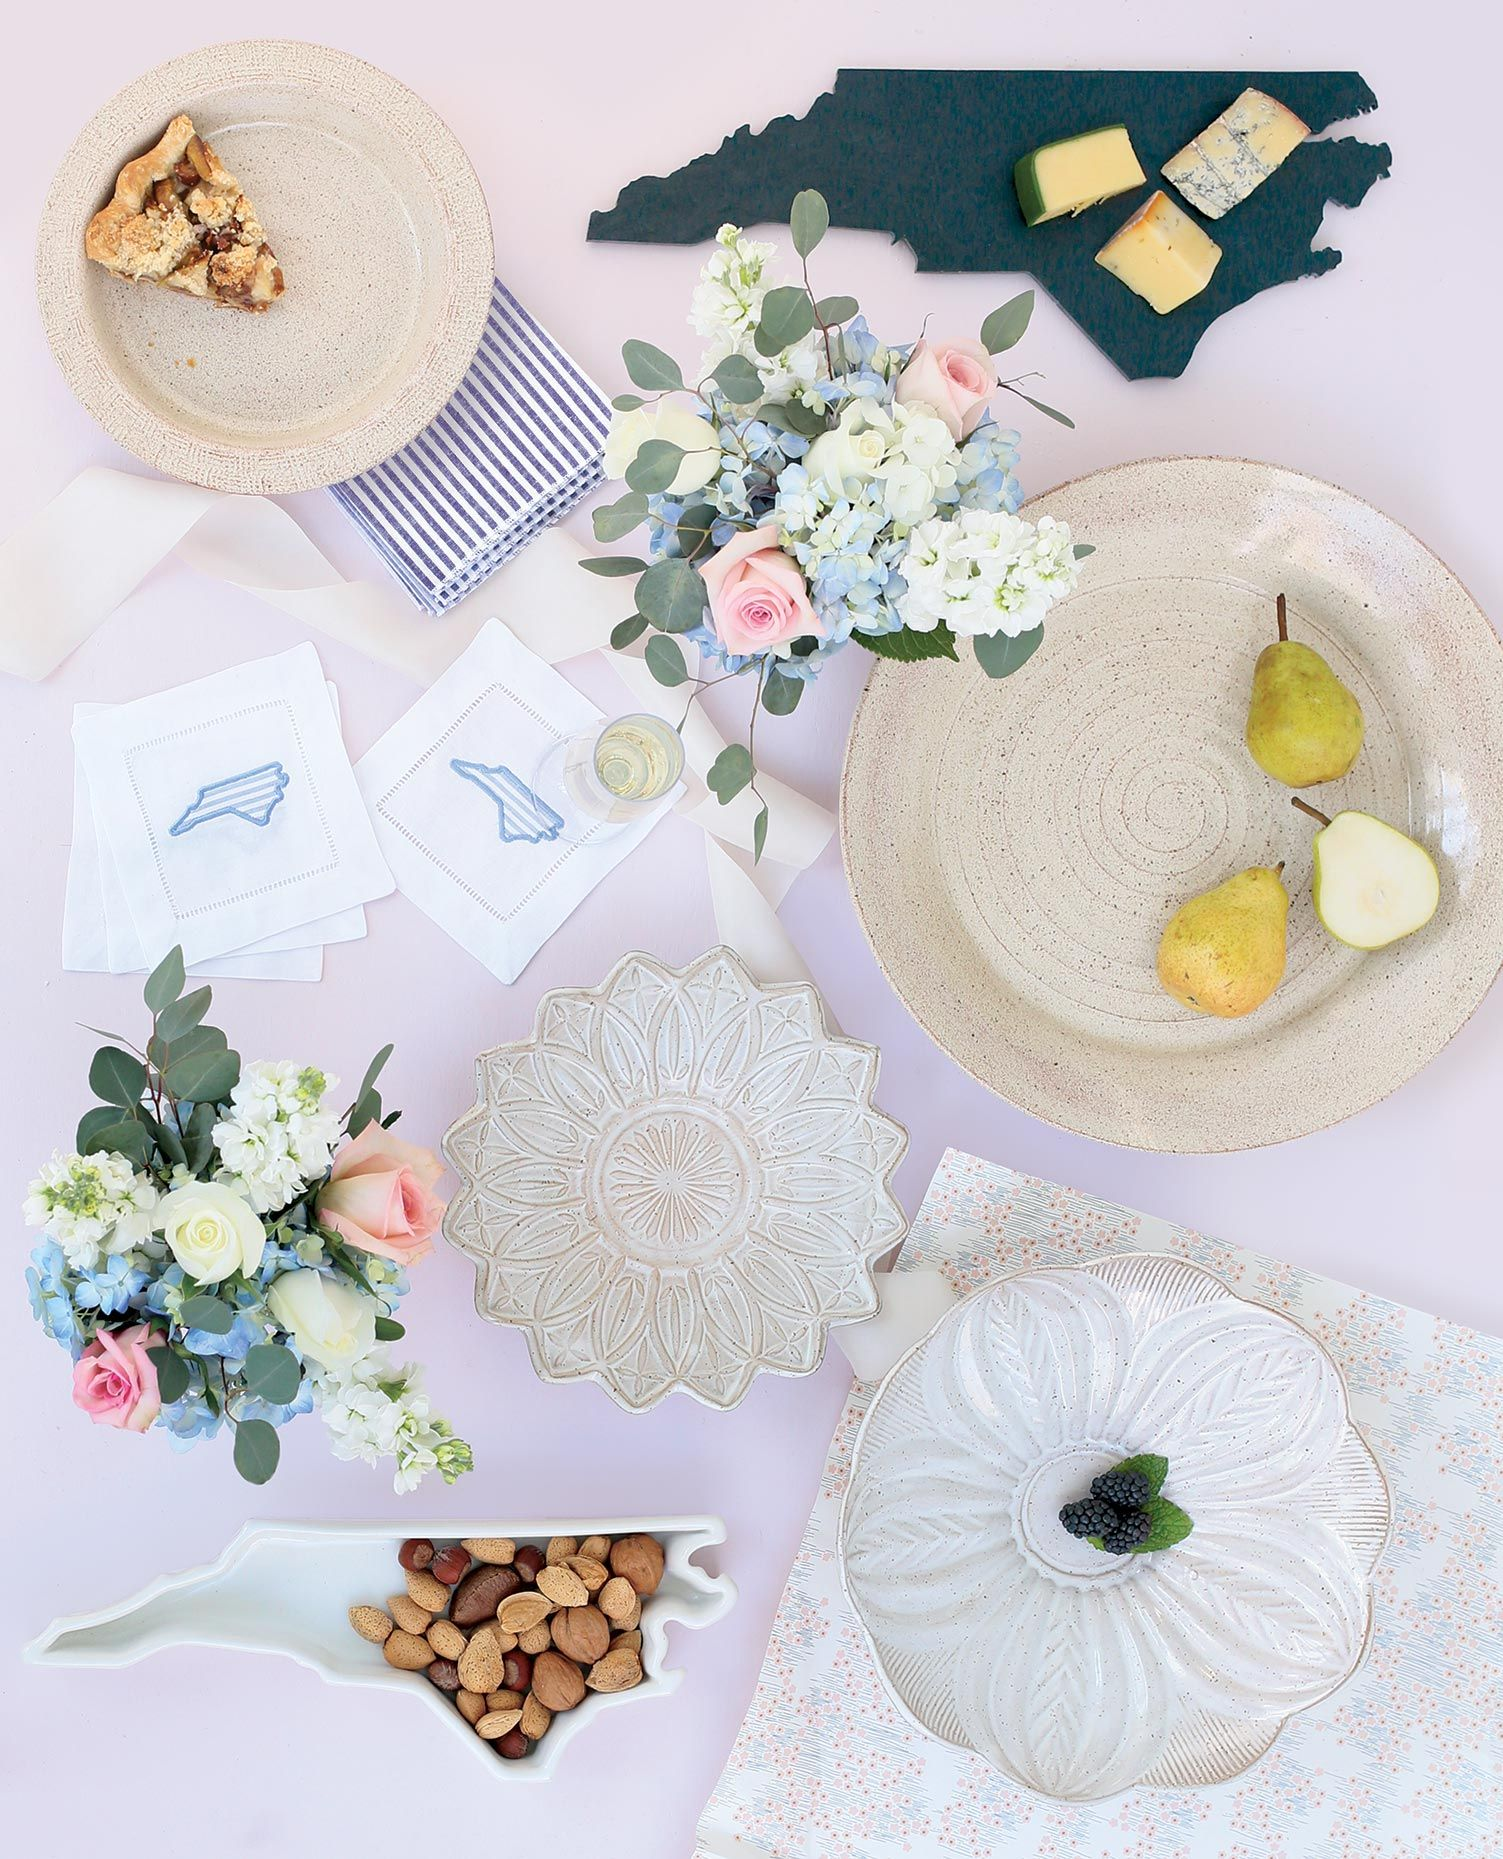 Gifts for couples tying the knot in North Carolina. Shop